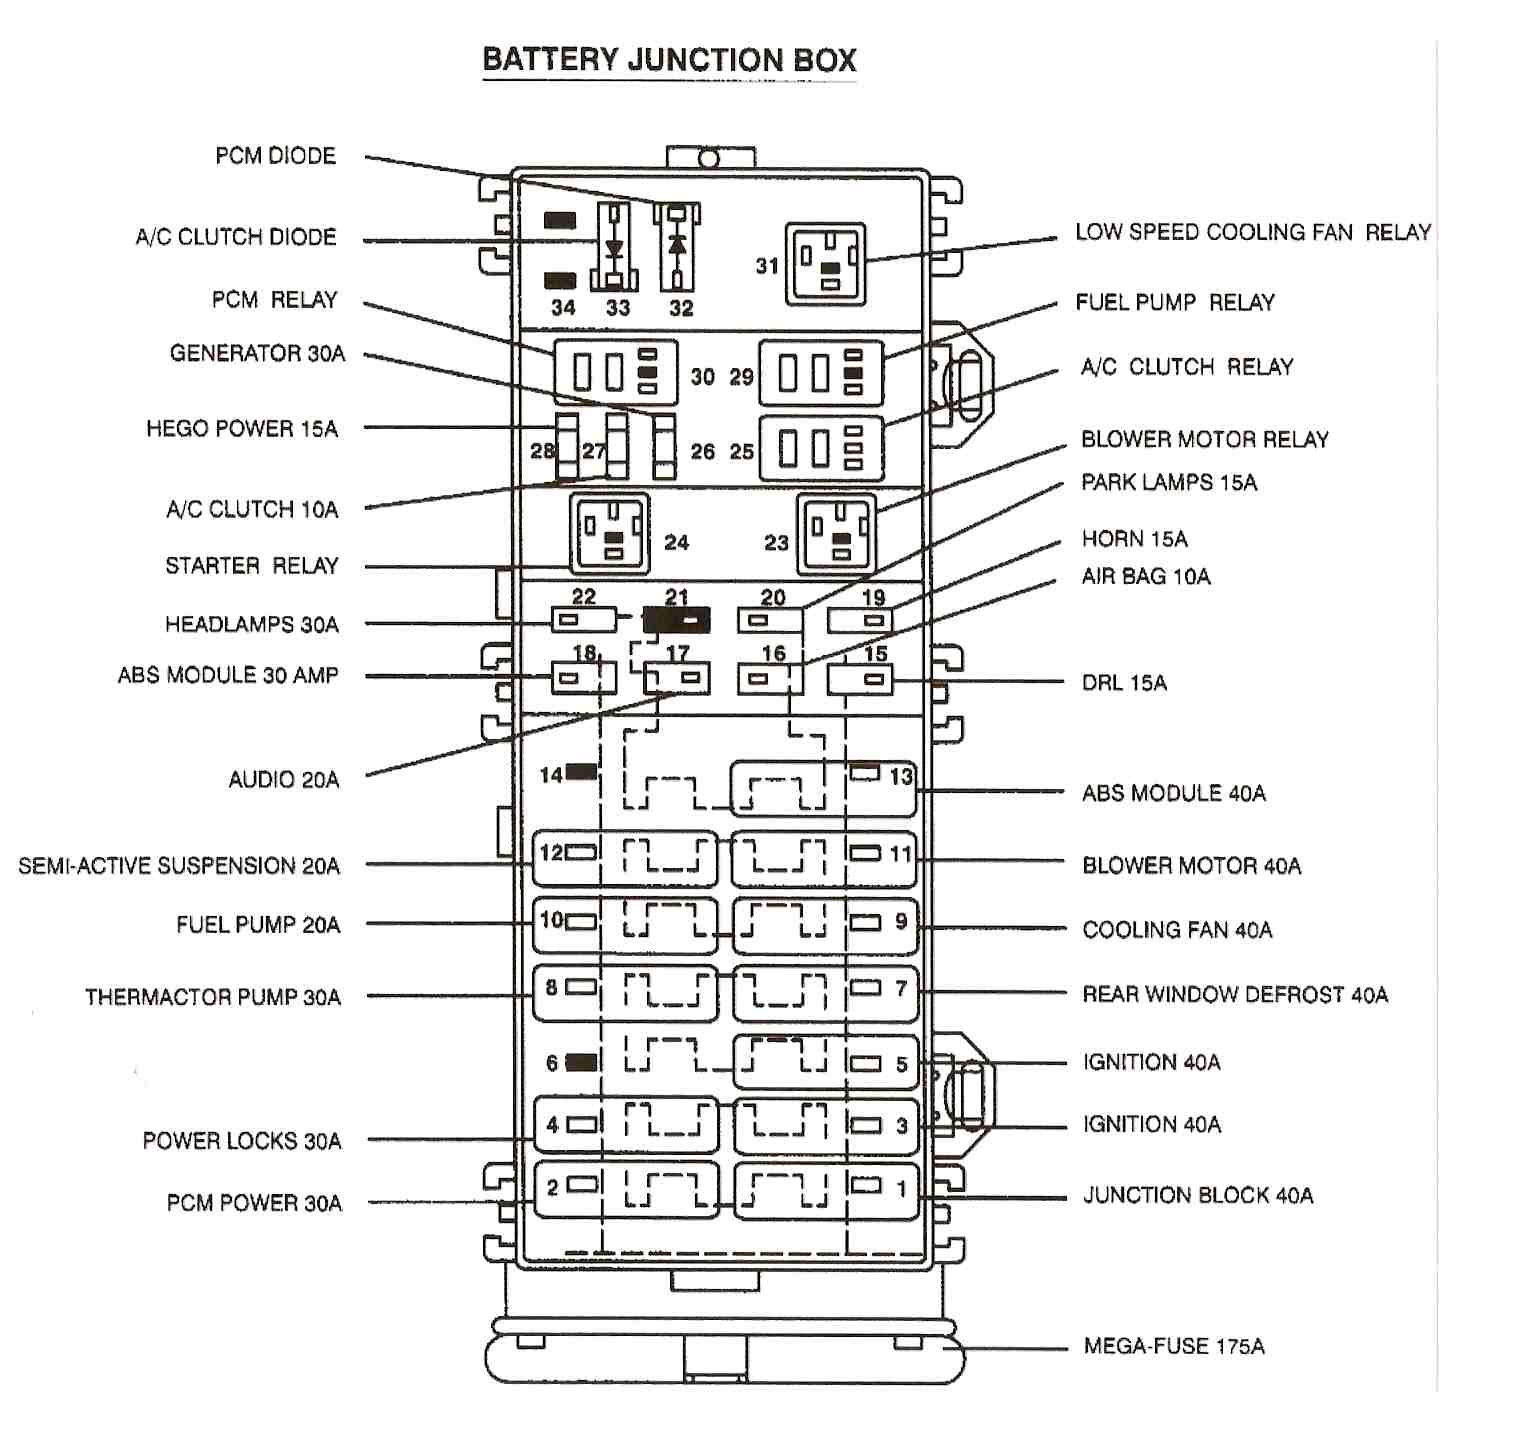 Wiring Diagram For Ford Taurus Ses